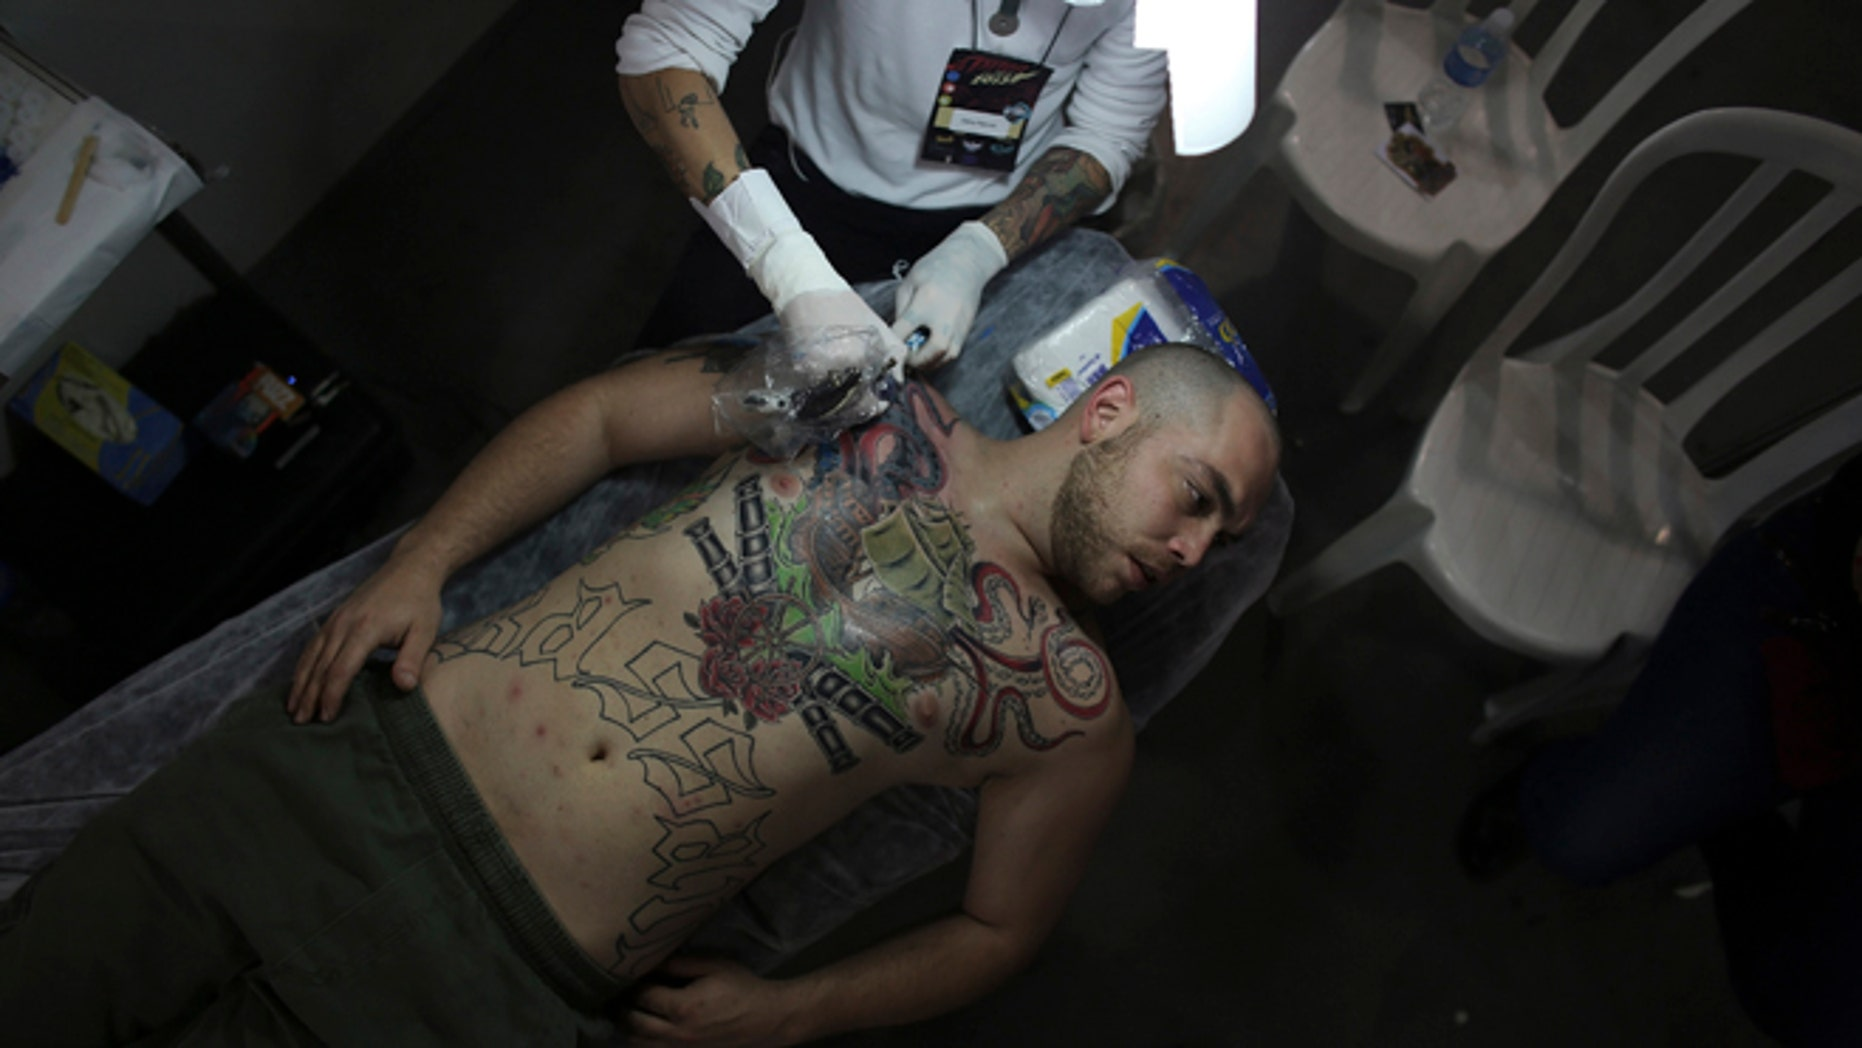 July 20, 2013: An artist works on a tattoo on the body of a man.